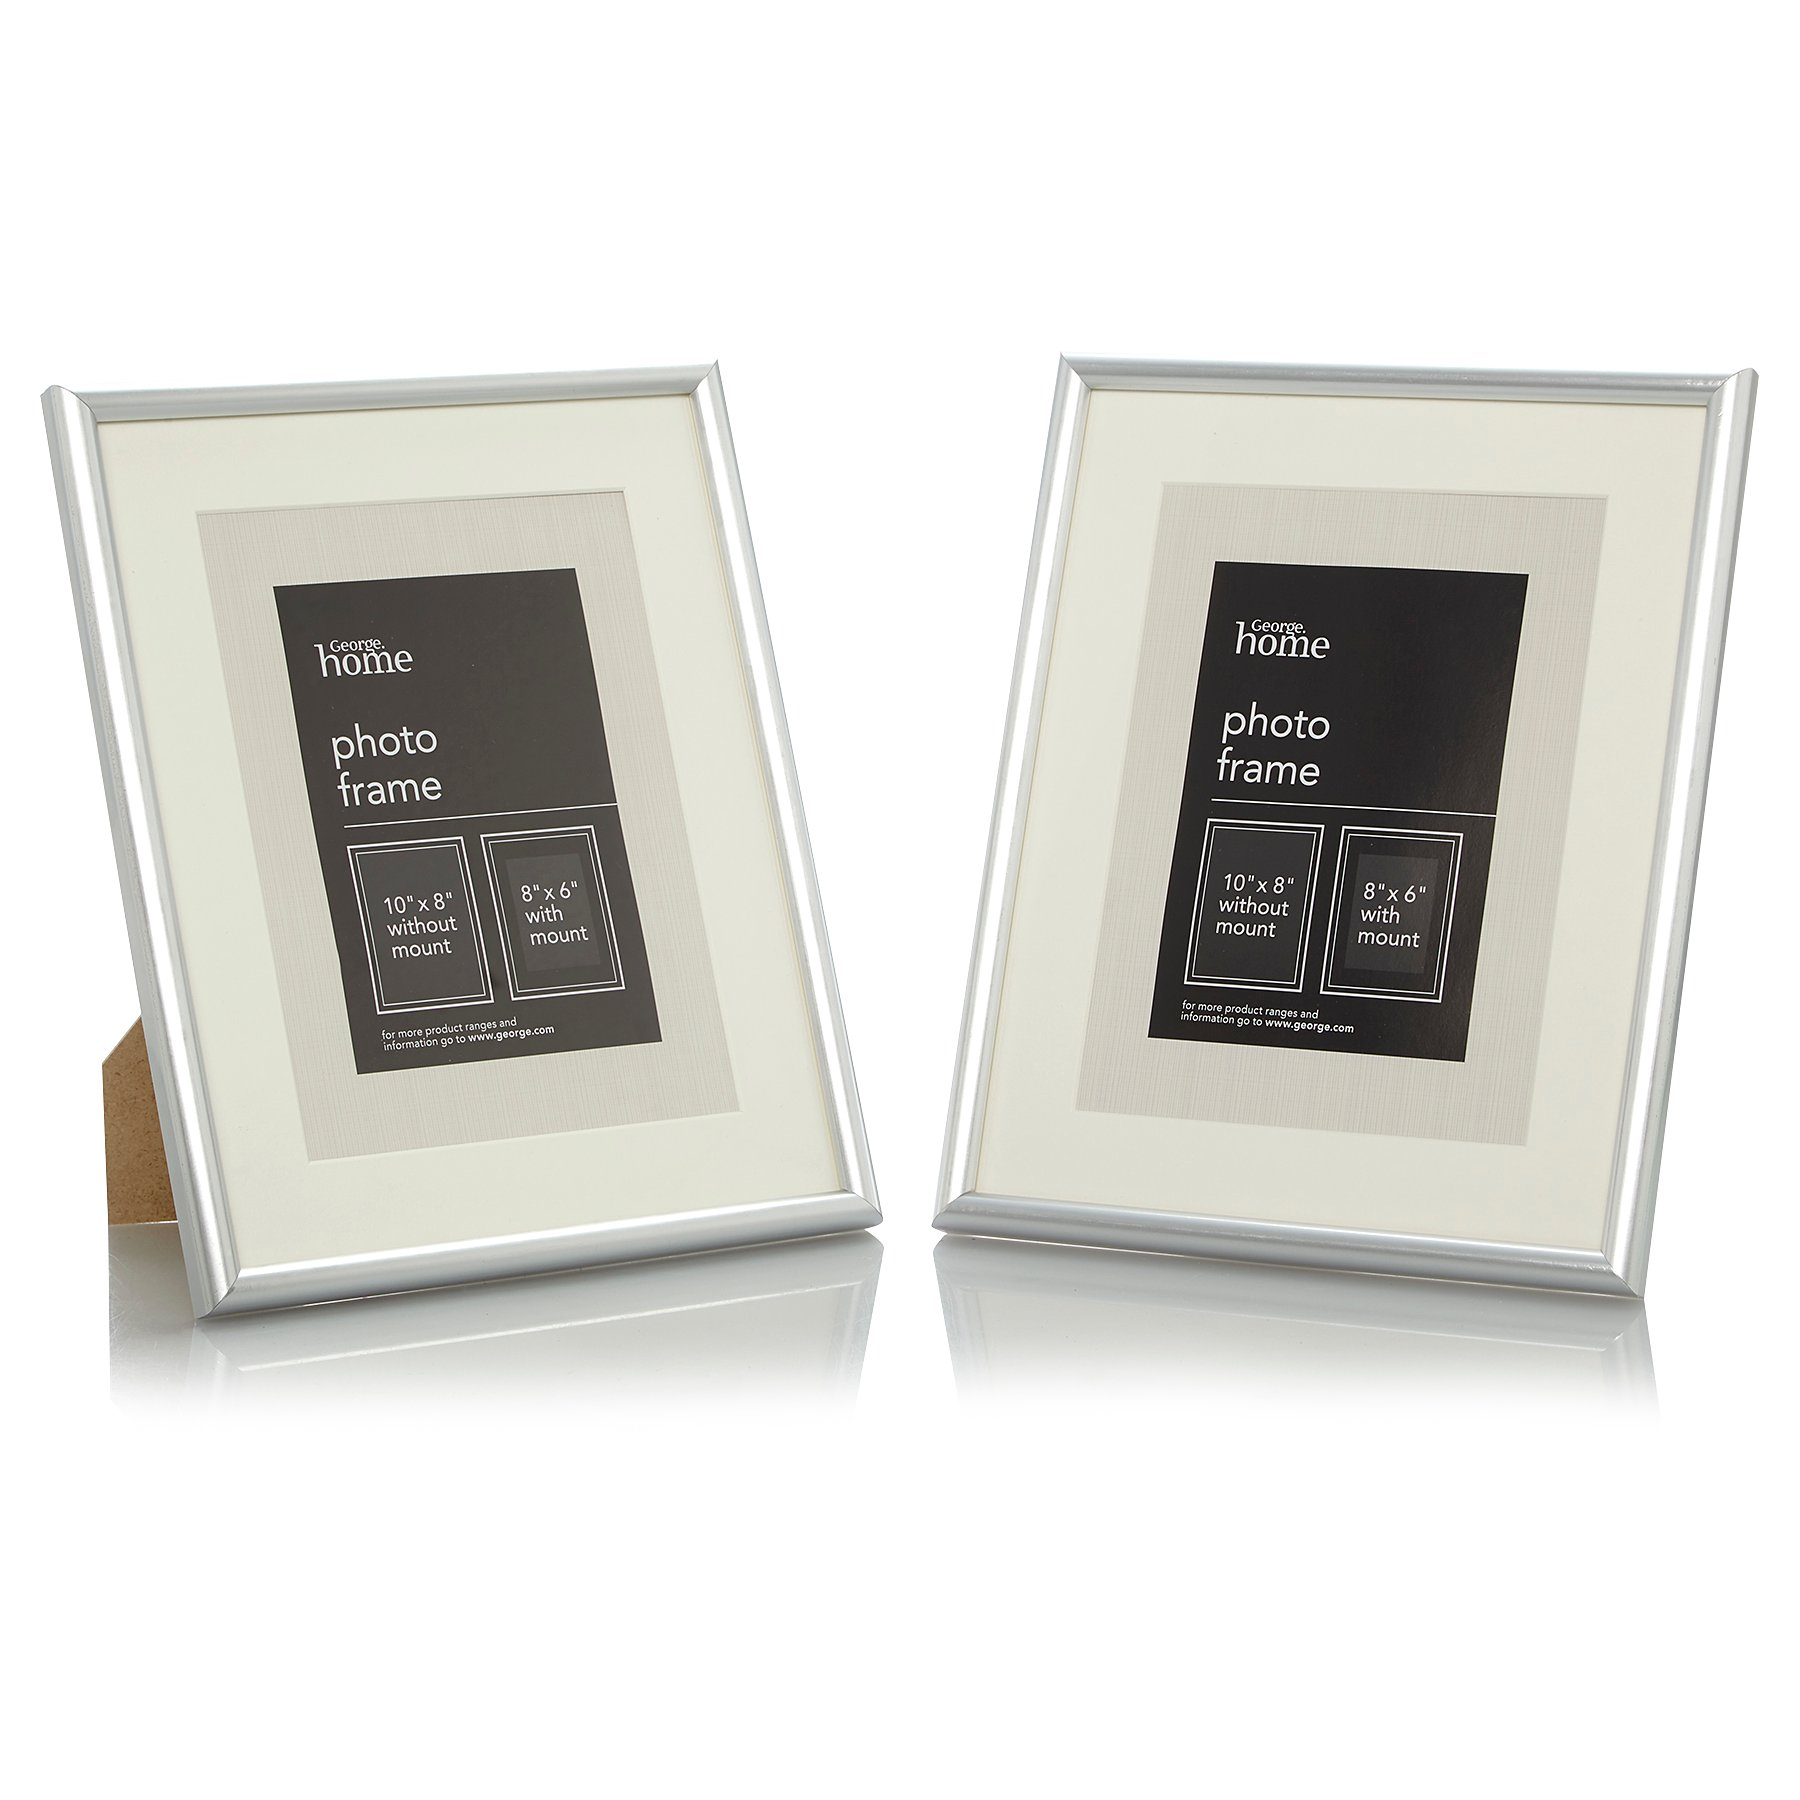 Silver Photo Frame 8 X 6 Inch 2 Pack Photo Frames George At Asda